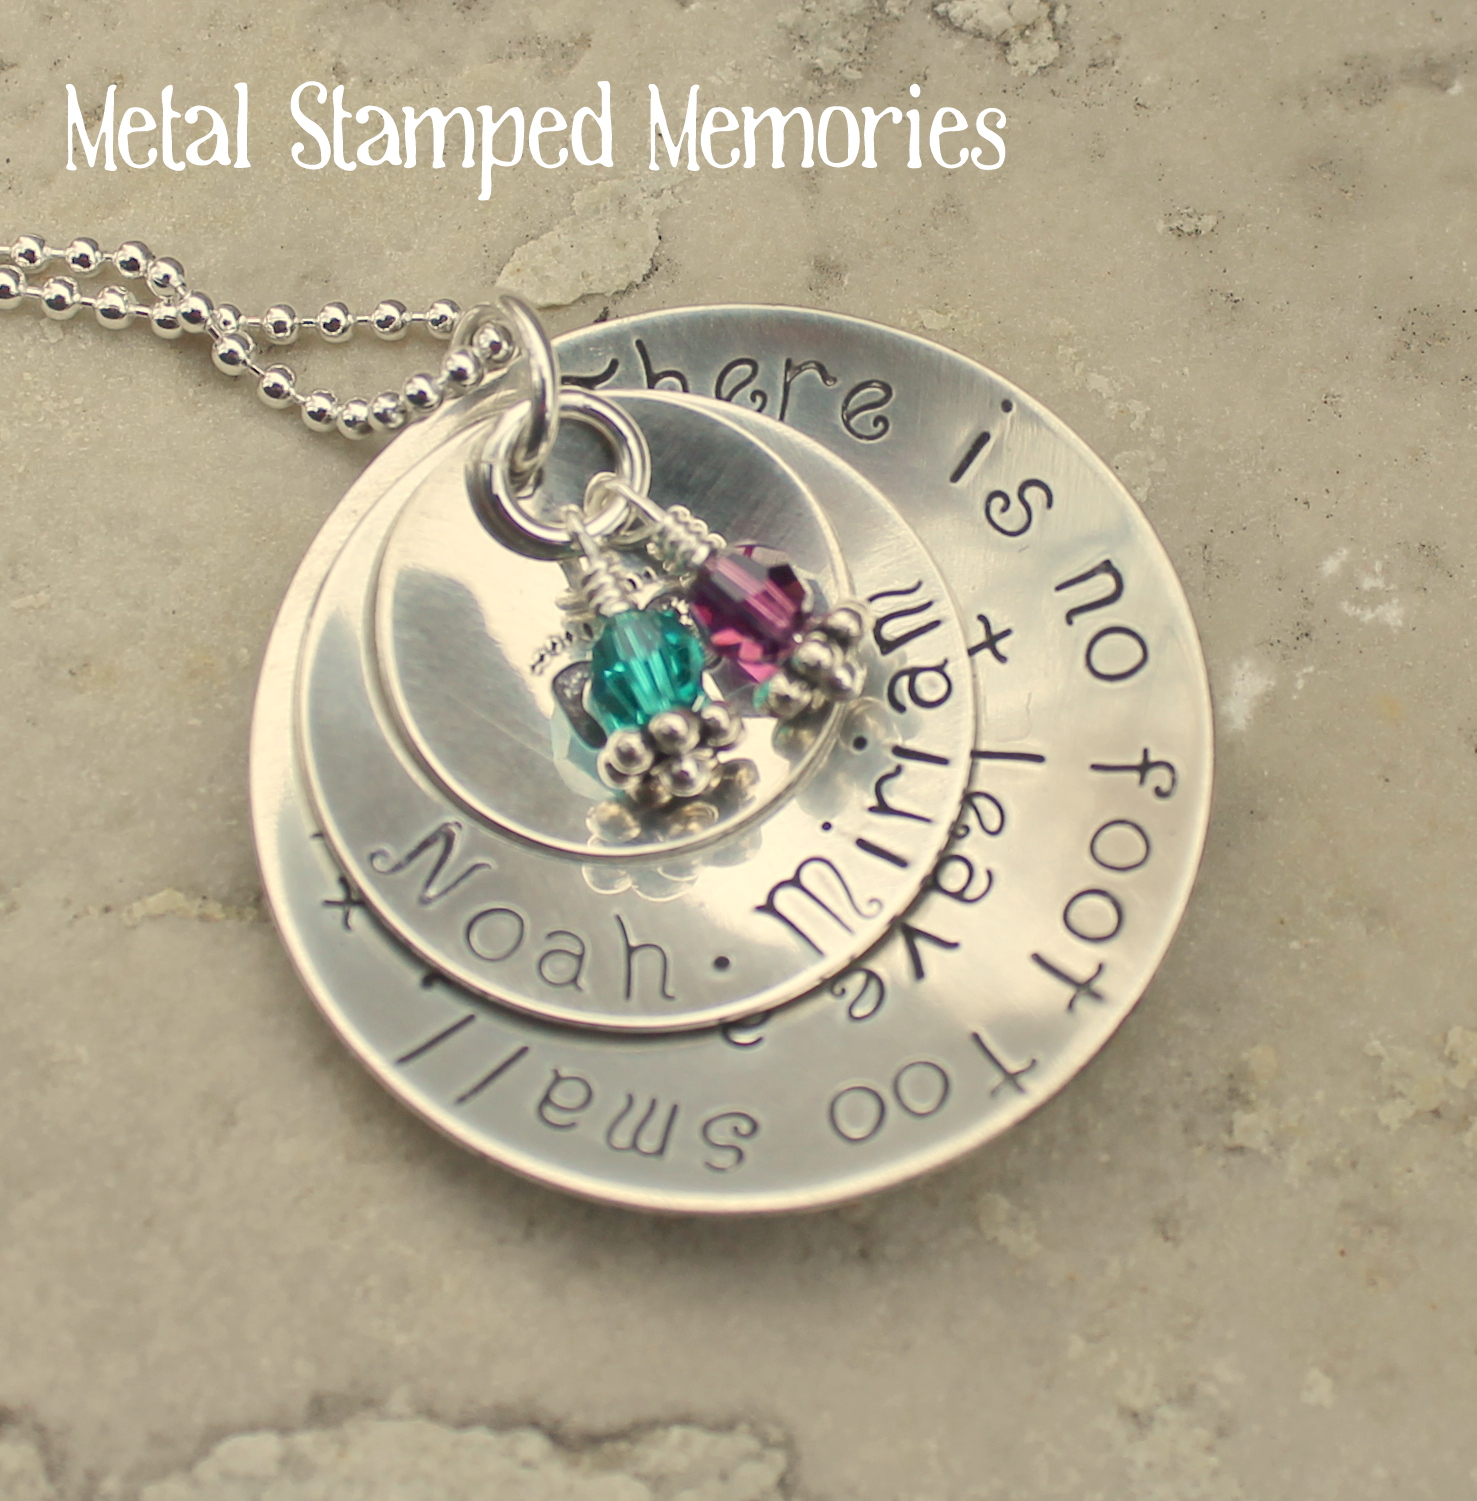 baby stamped foot metal there loss infant img necklaces is too miscarriage no pregnancy child necklace remembrance small memories jewelry